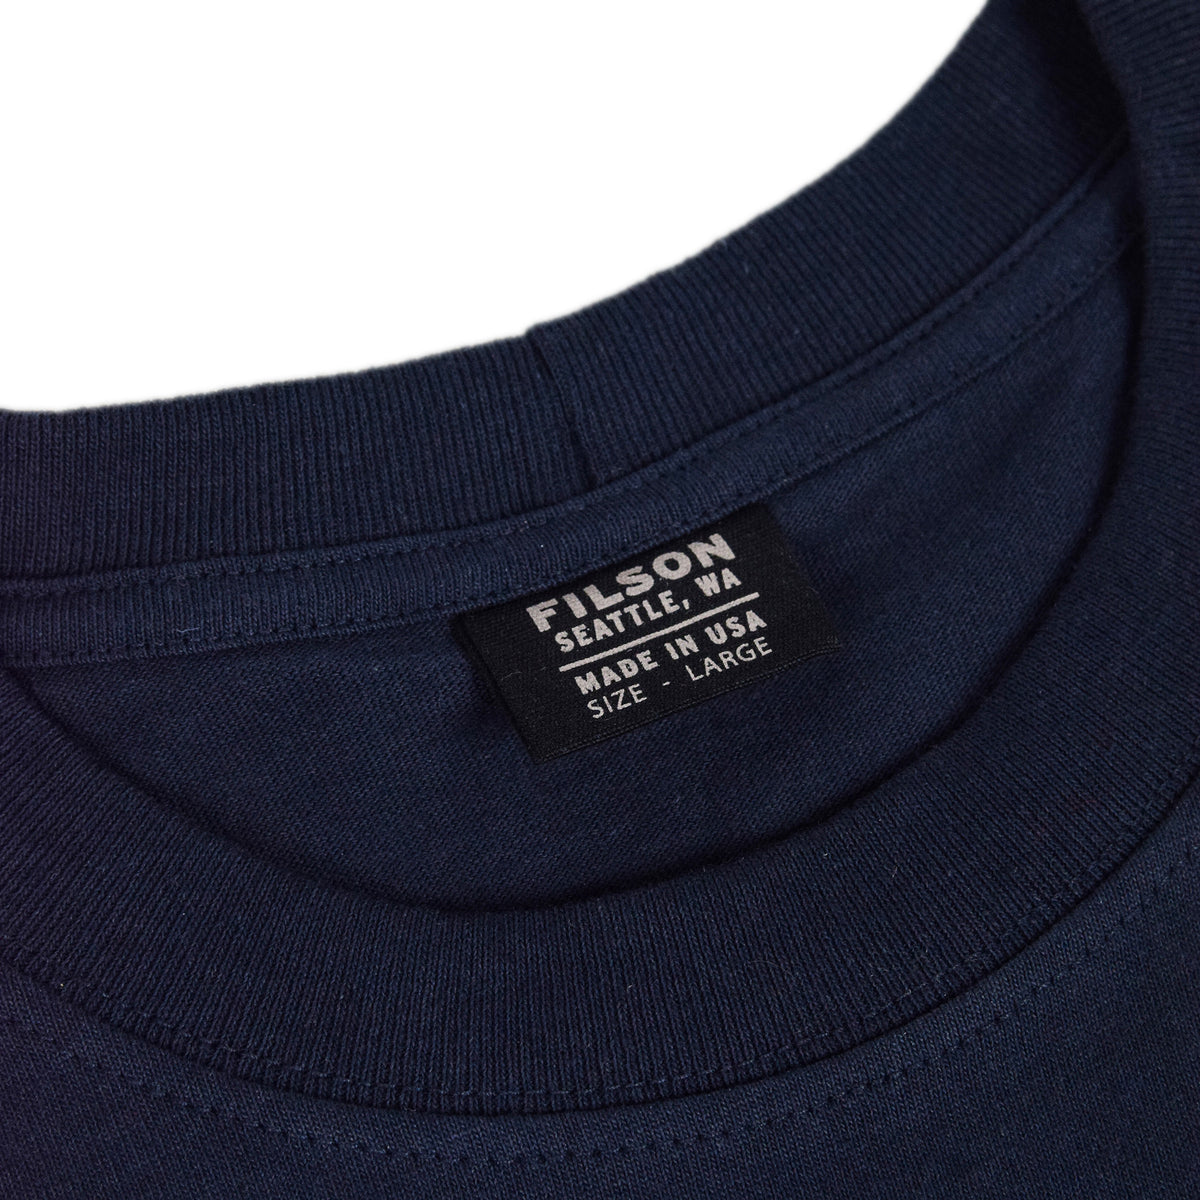 Filson Short Sleeve Outfitter One Pocket T-Shirt Dark Navy collar